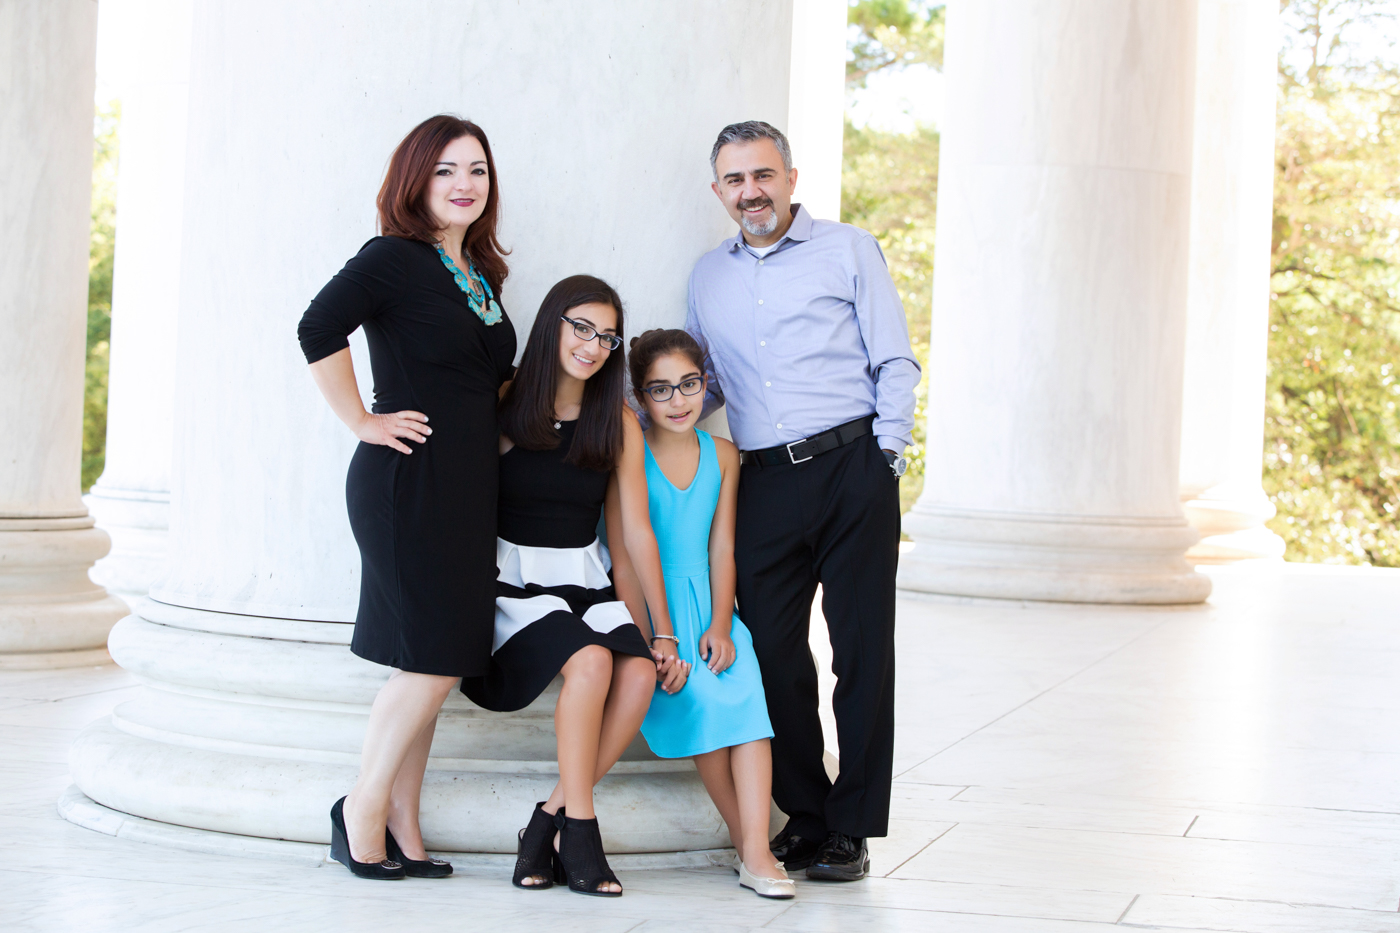 early-fall-family-shoot-in-washington-dc-ksenia-pro-photography-14